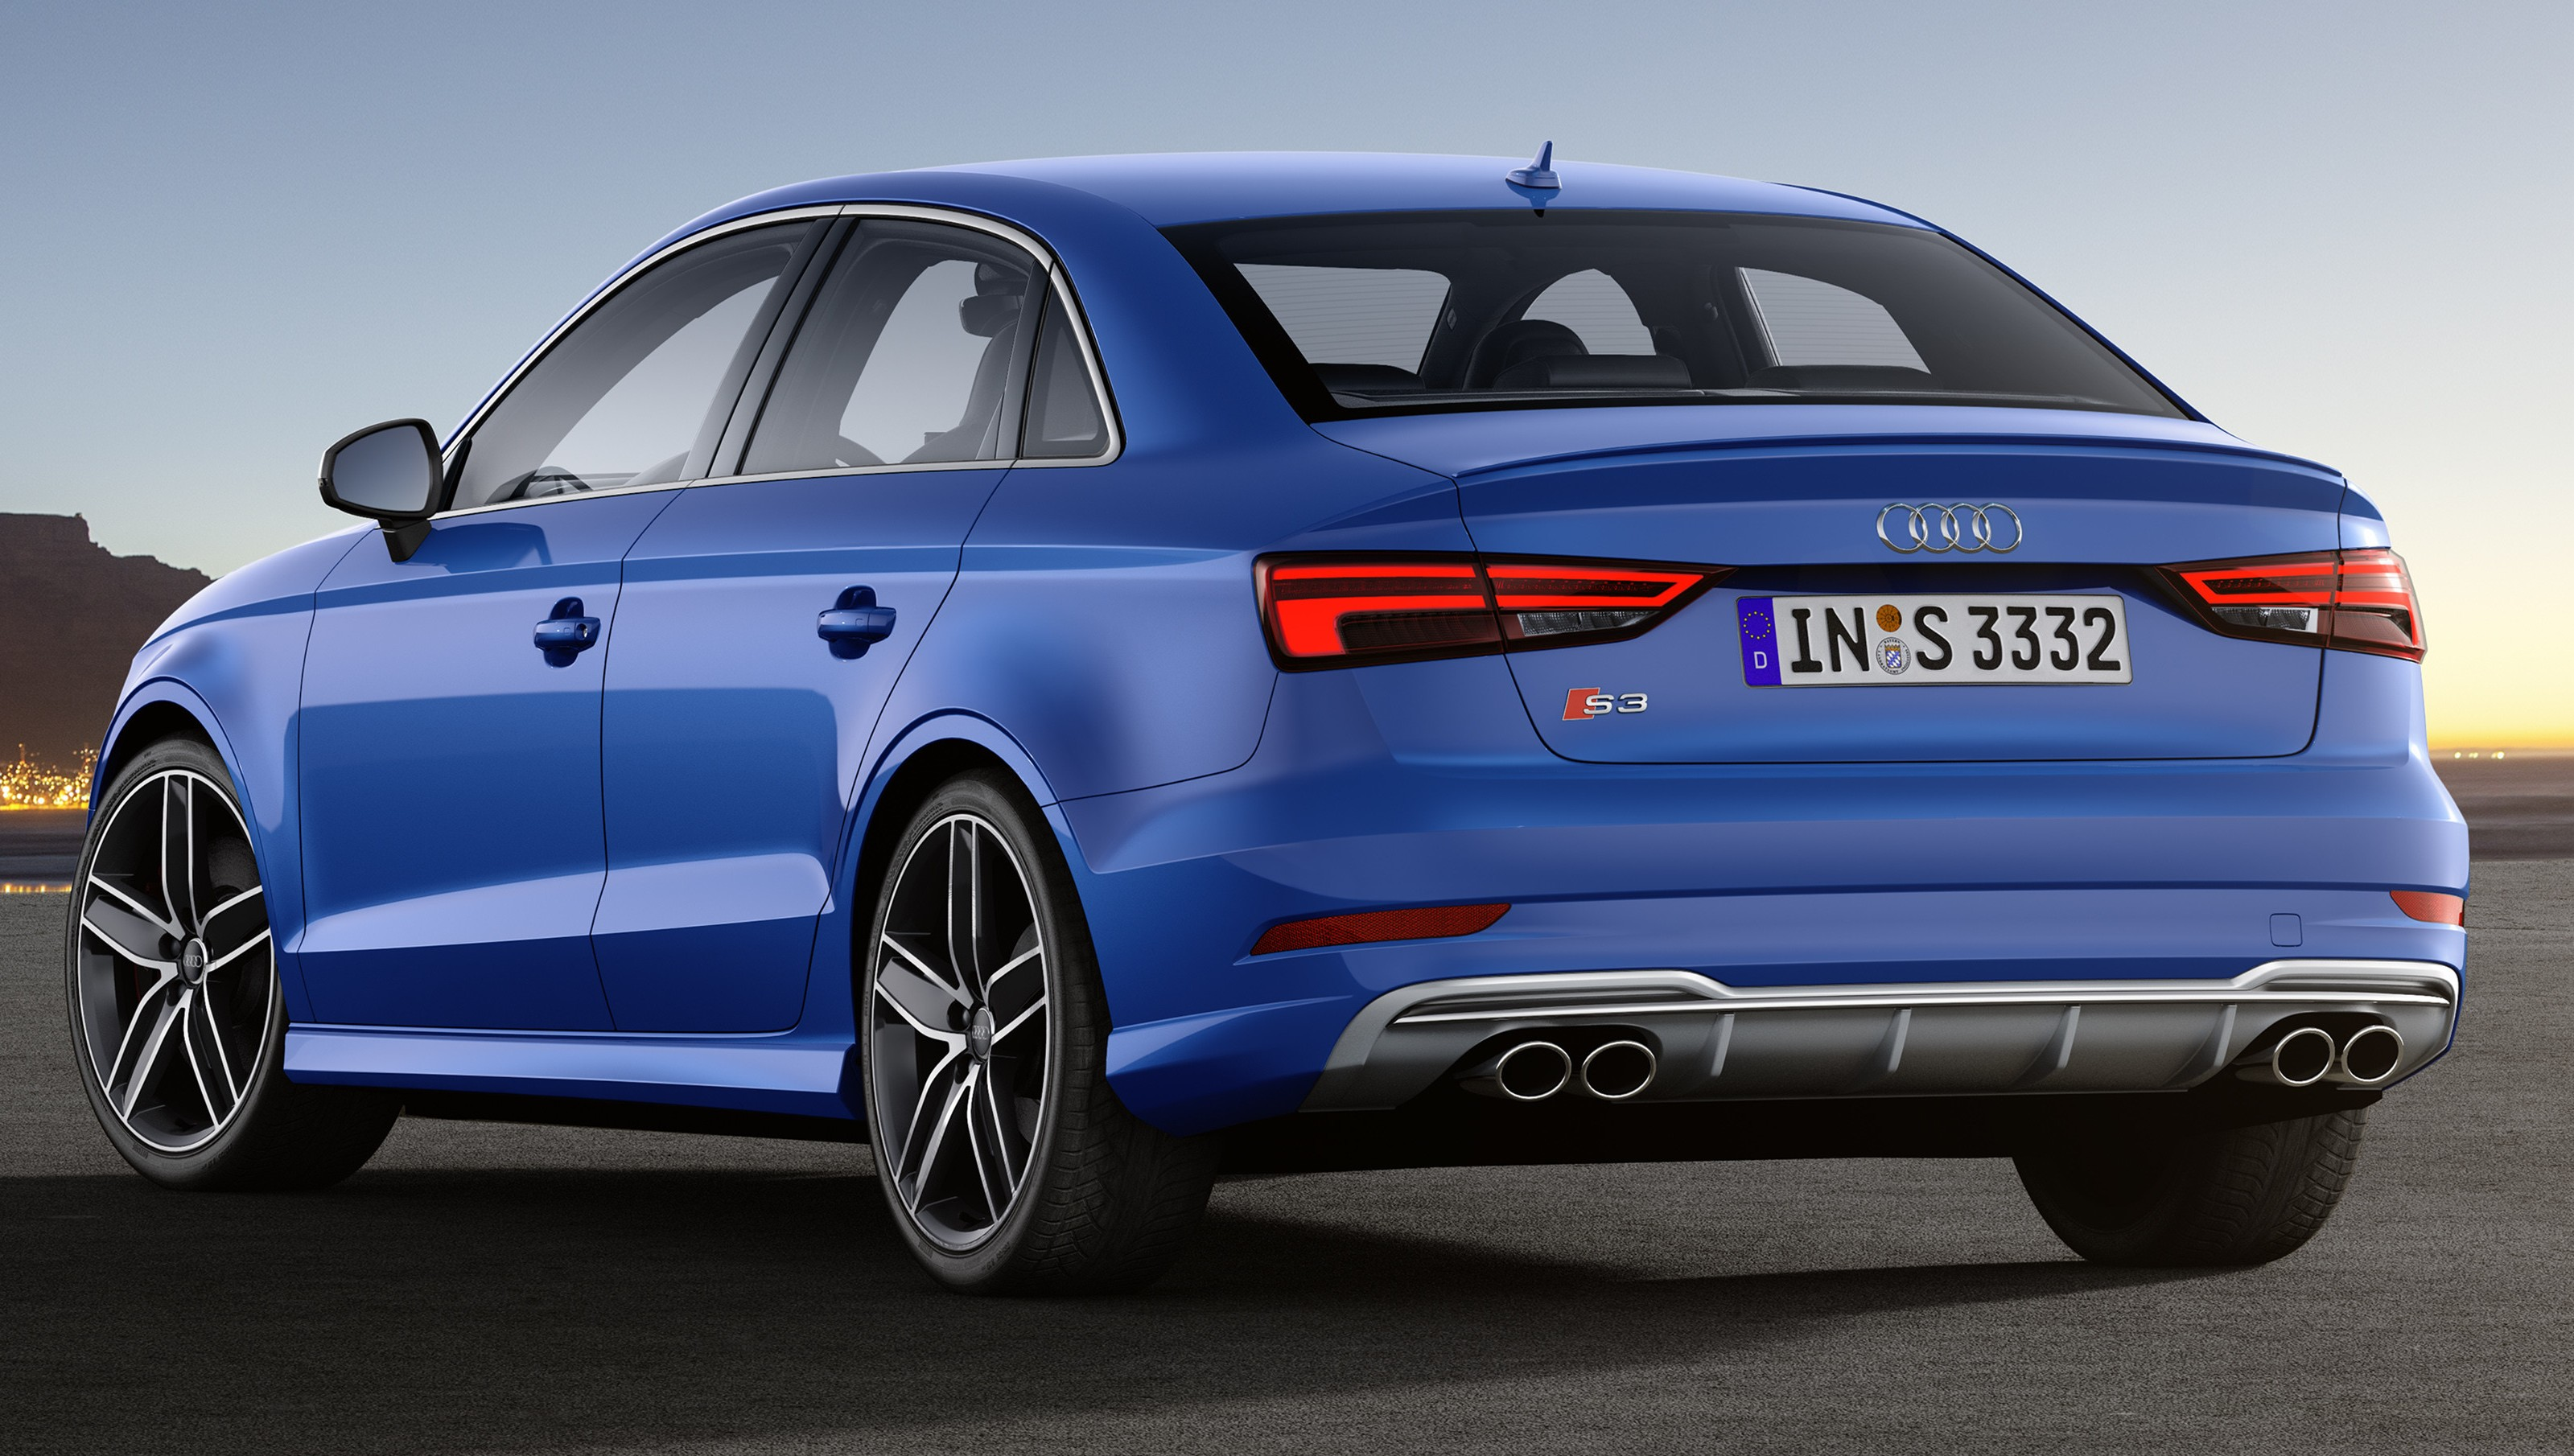 Audi A3 Sedan >> Audi A3 and S3 facelift gets new looks, tech, engines Image 472305